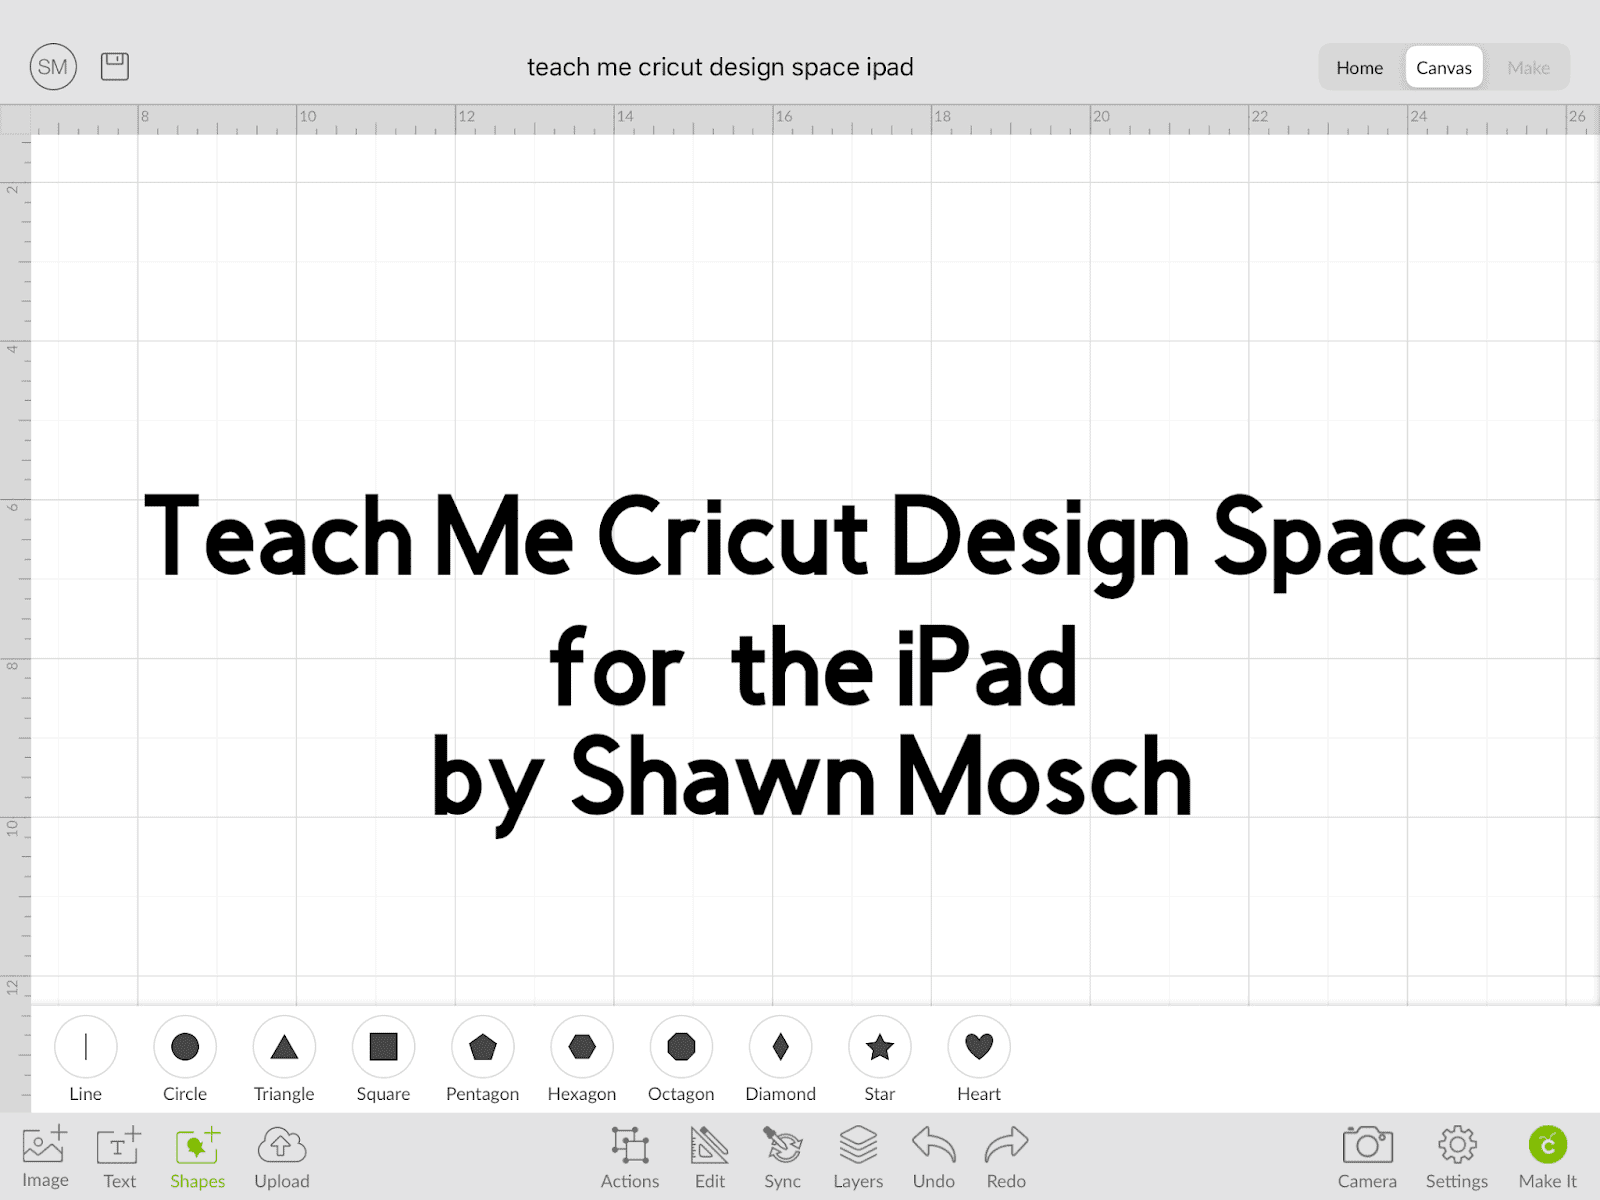 Teach Me Cricut Design Space for iPad